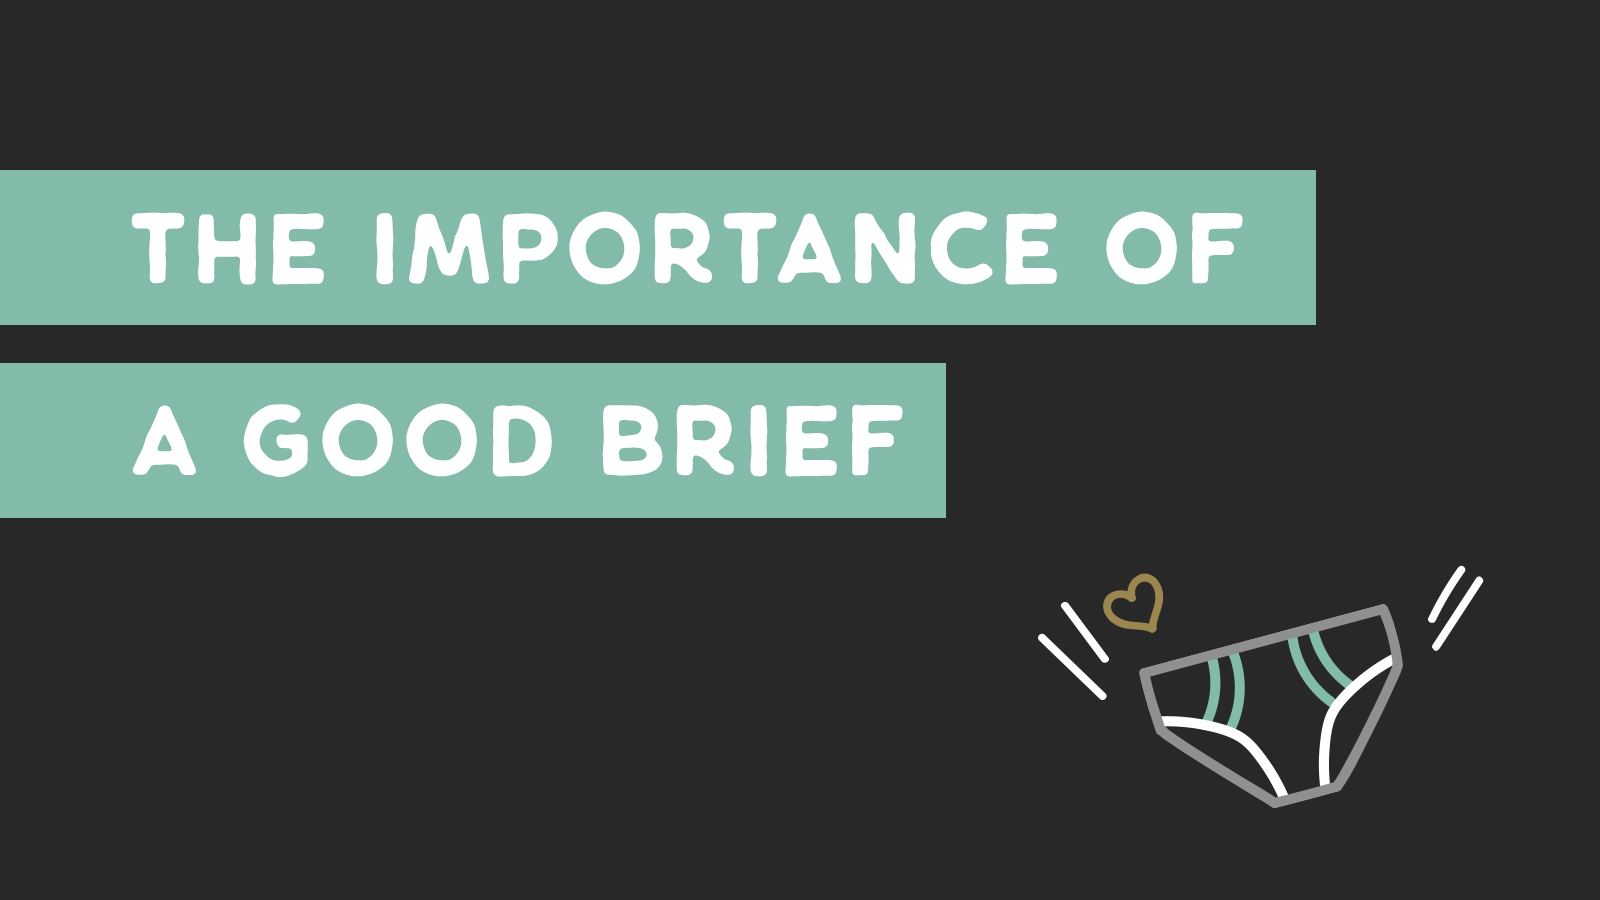 The importance of a good brief